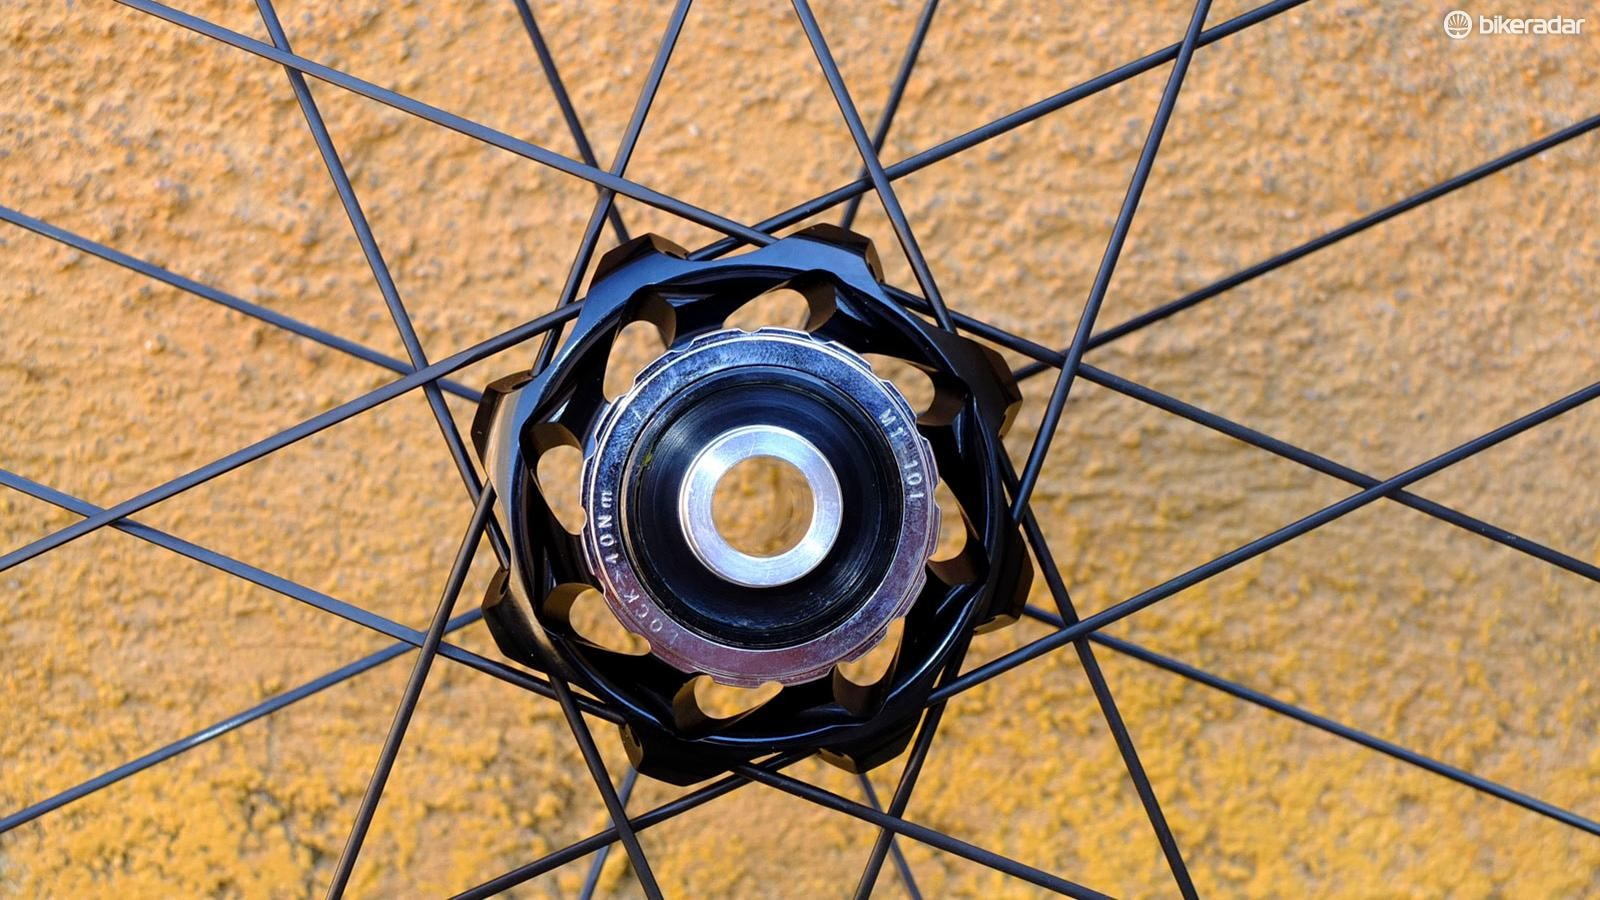 The disc brake hubs have 12mm thru-axles and use Campy's 2:1 spoking pattern